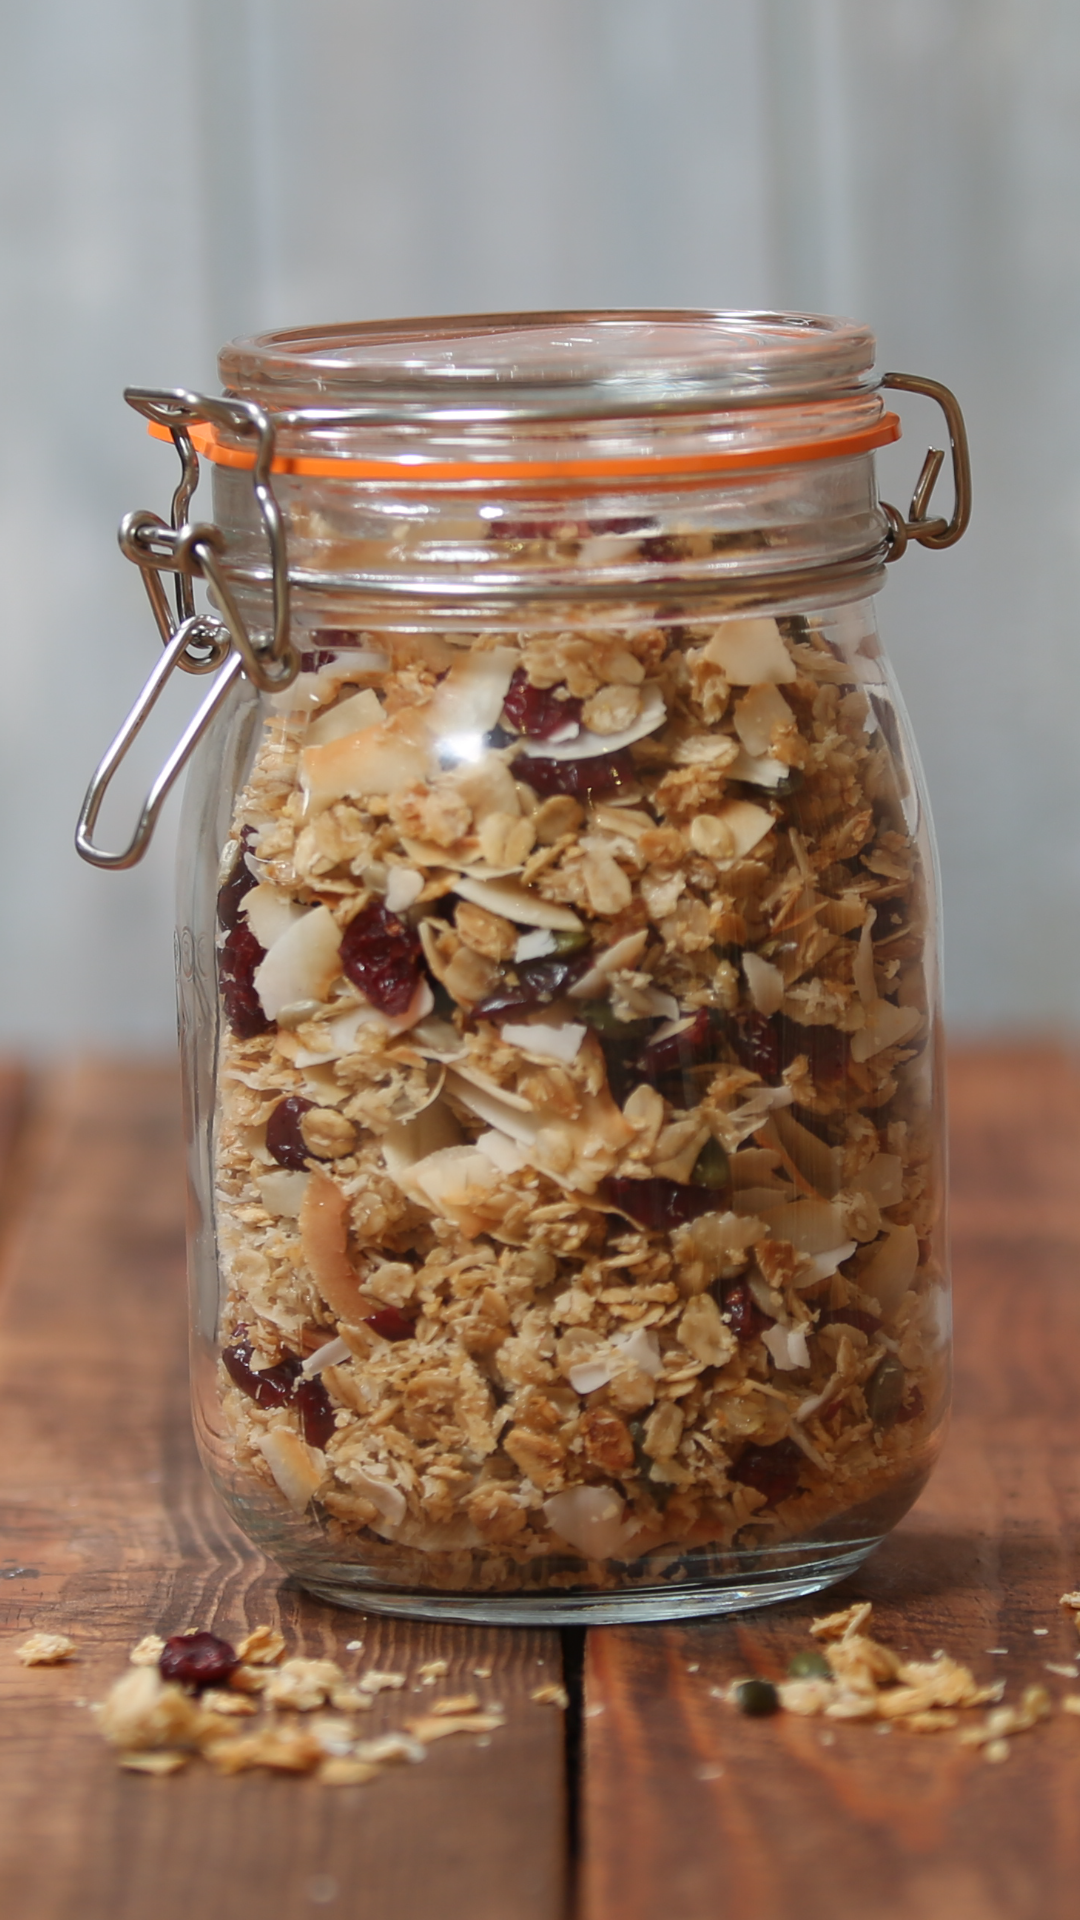 Coconut Granola Recipe Video Recipe Video Coconut Granola Recipe Homemade Granola Healthy Granola Recipe Healthy